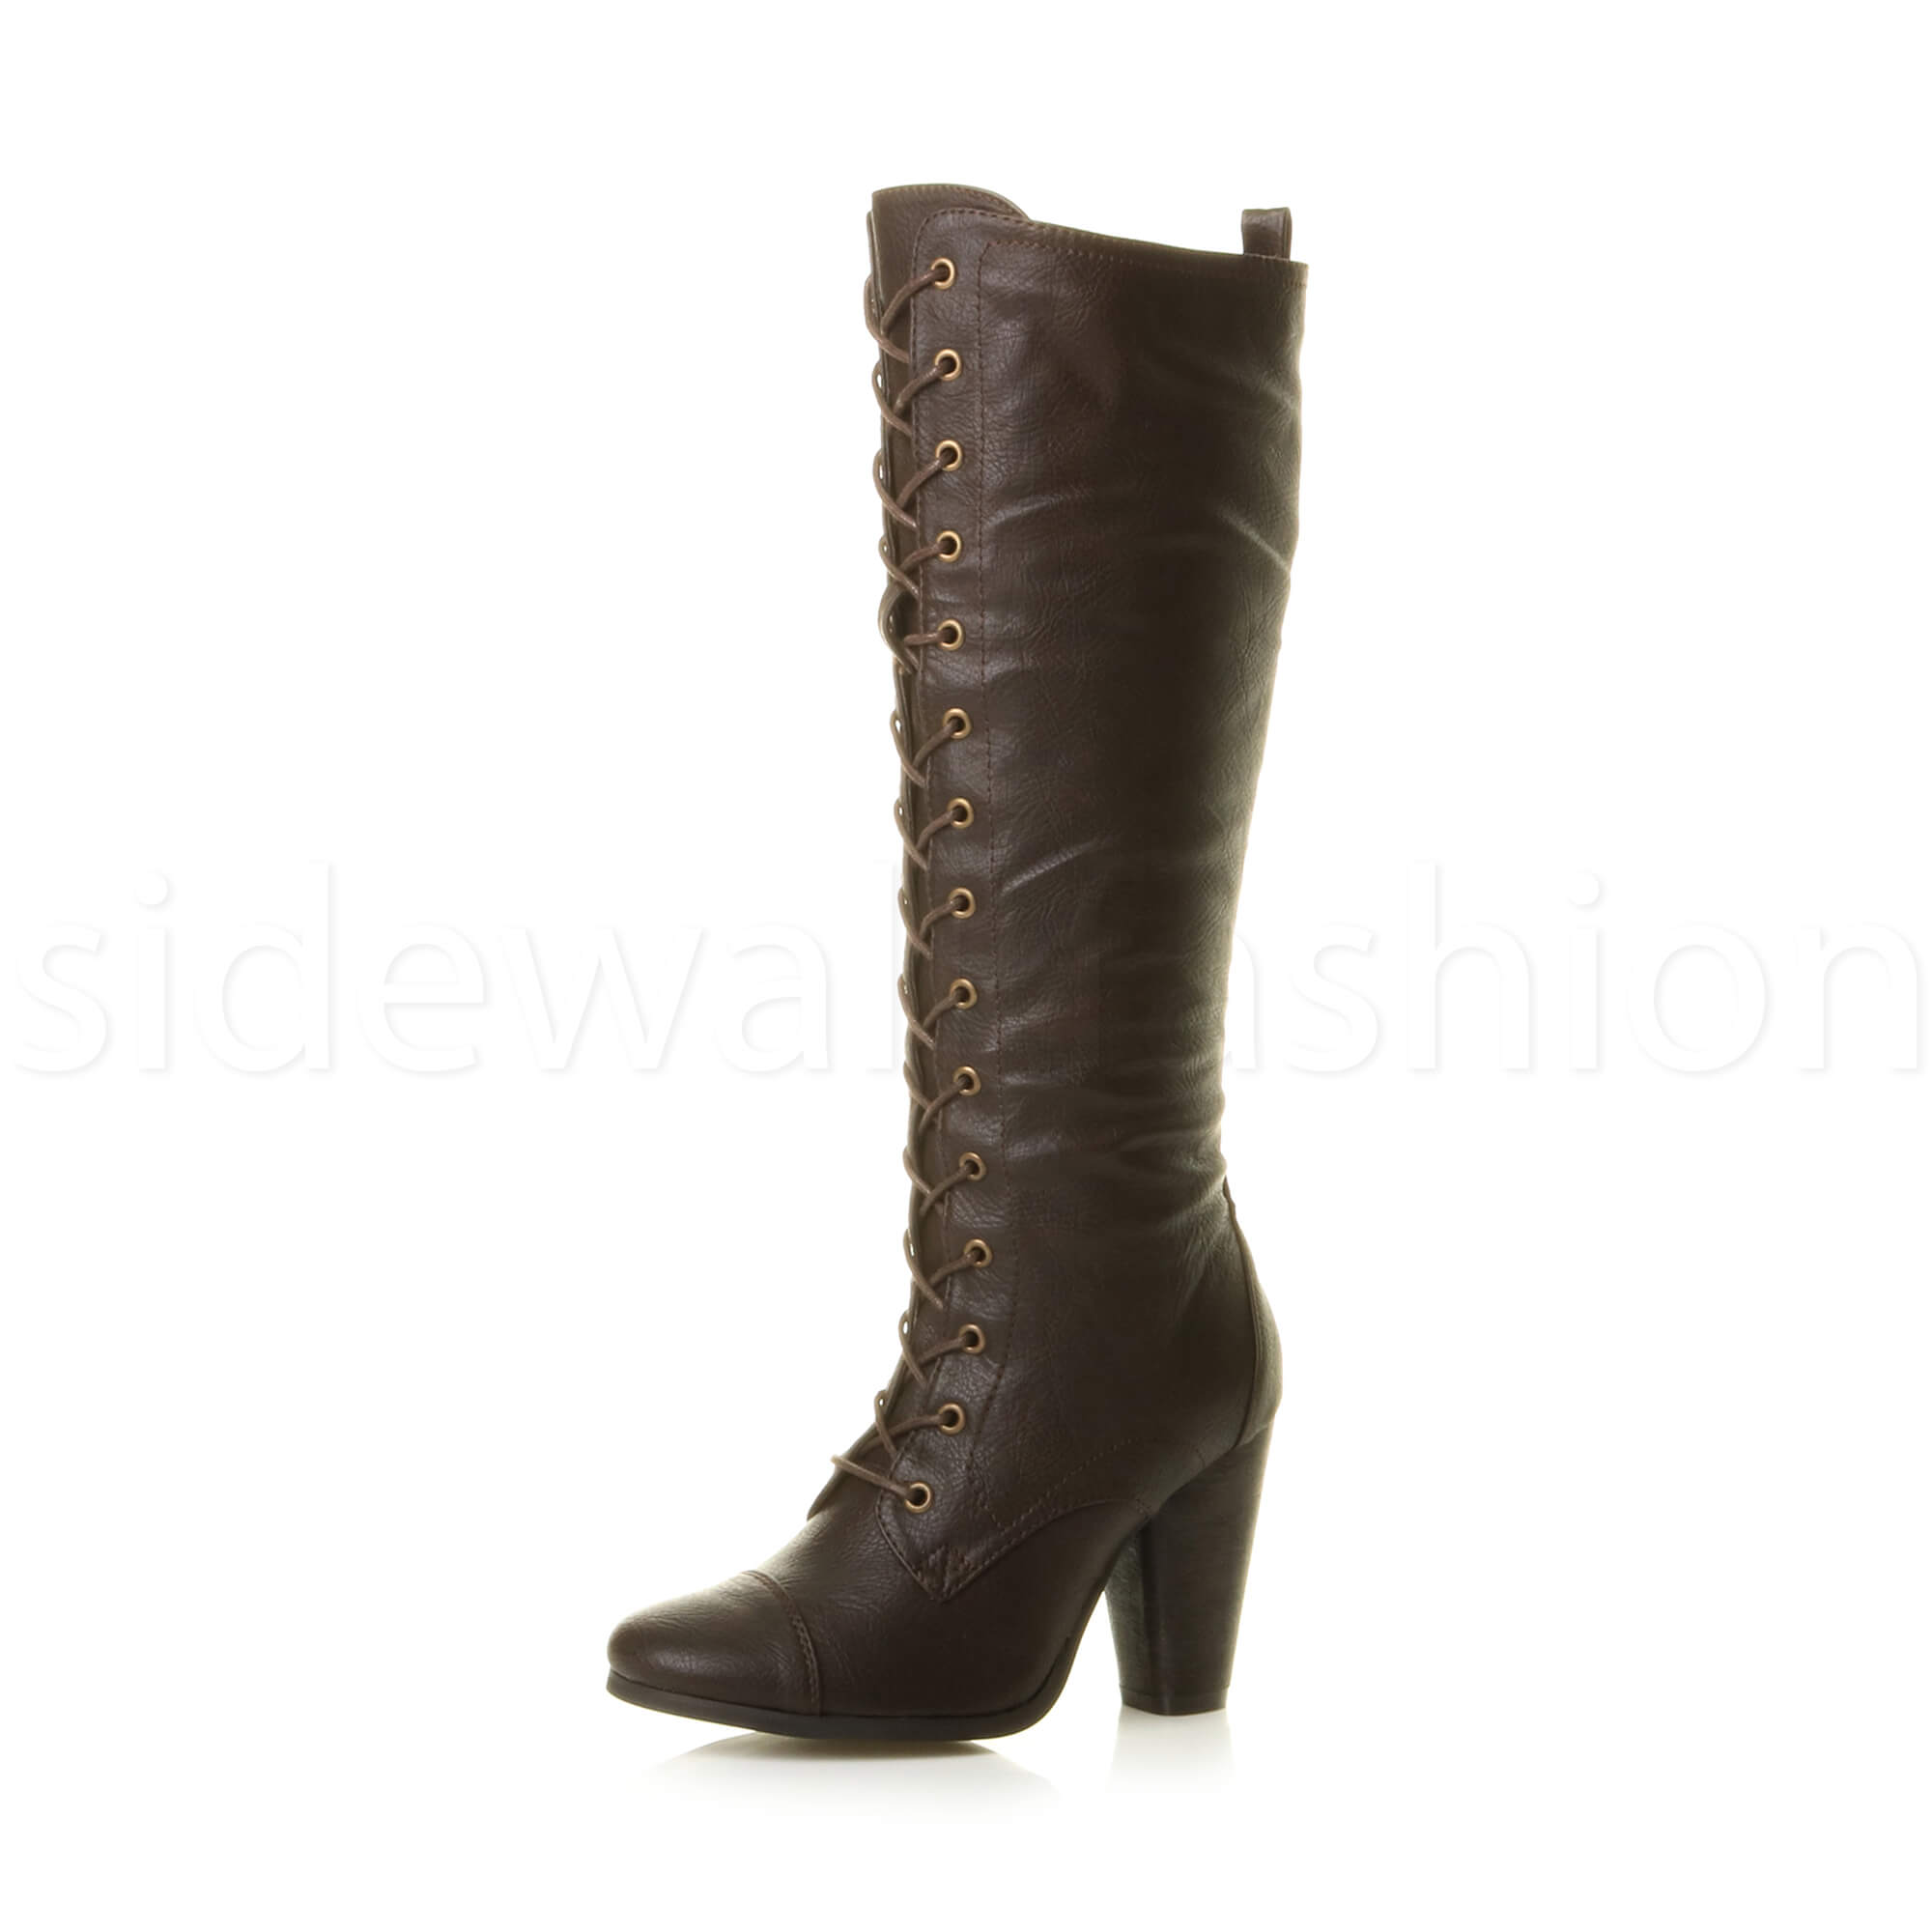 Cool Black / Dark Brown Synthetic Leather High Heel Womens Mid-Calf Boots Size 5 - 10 | EBay